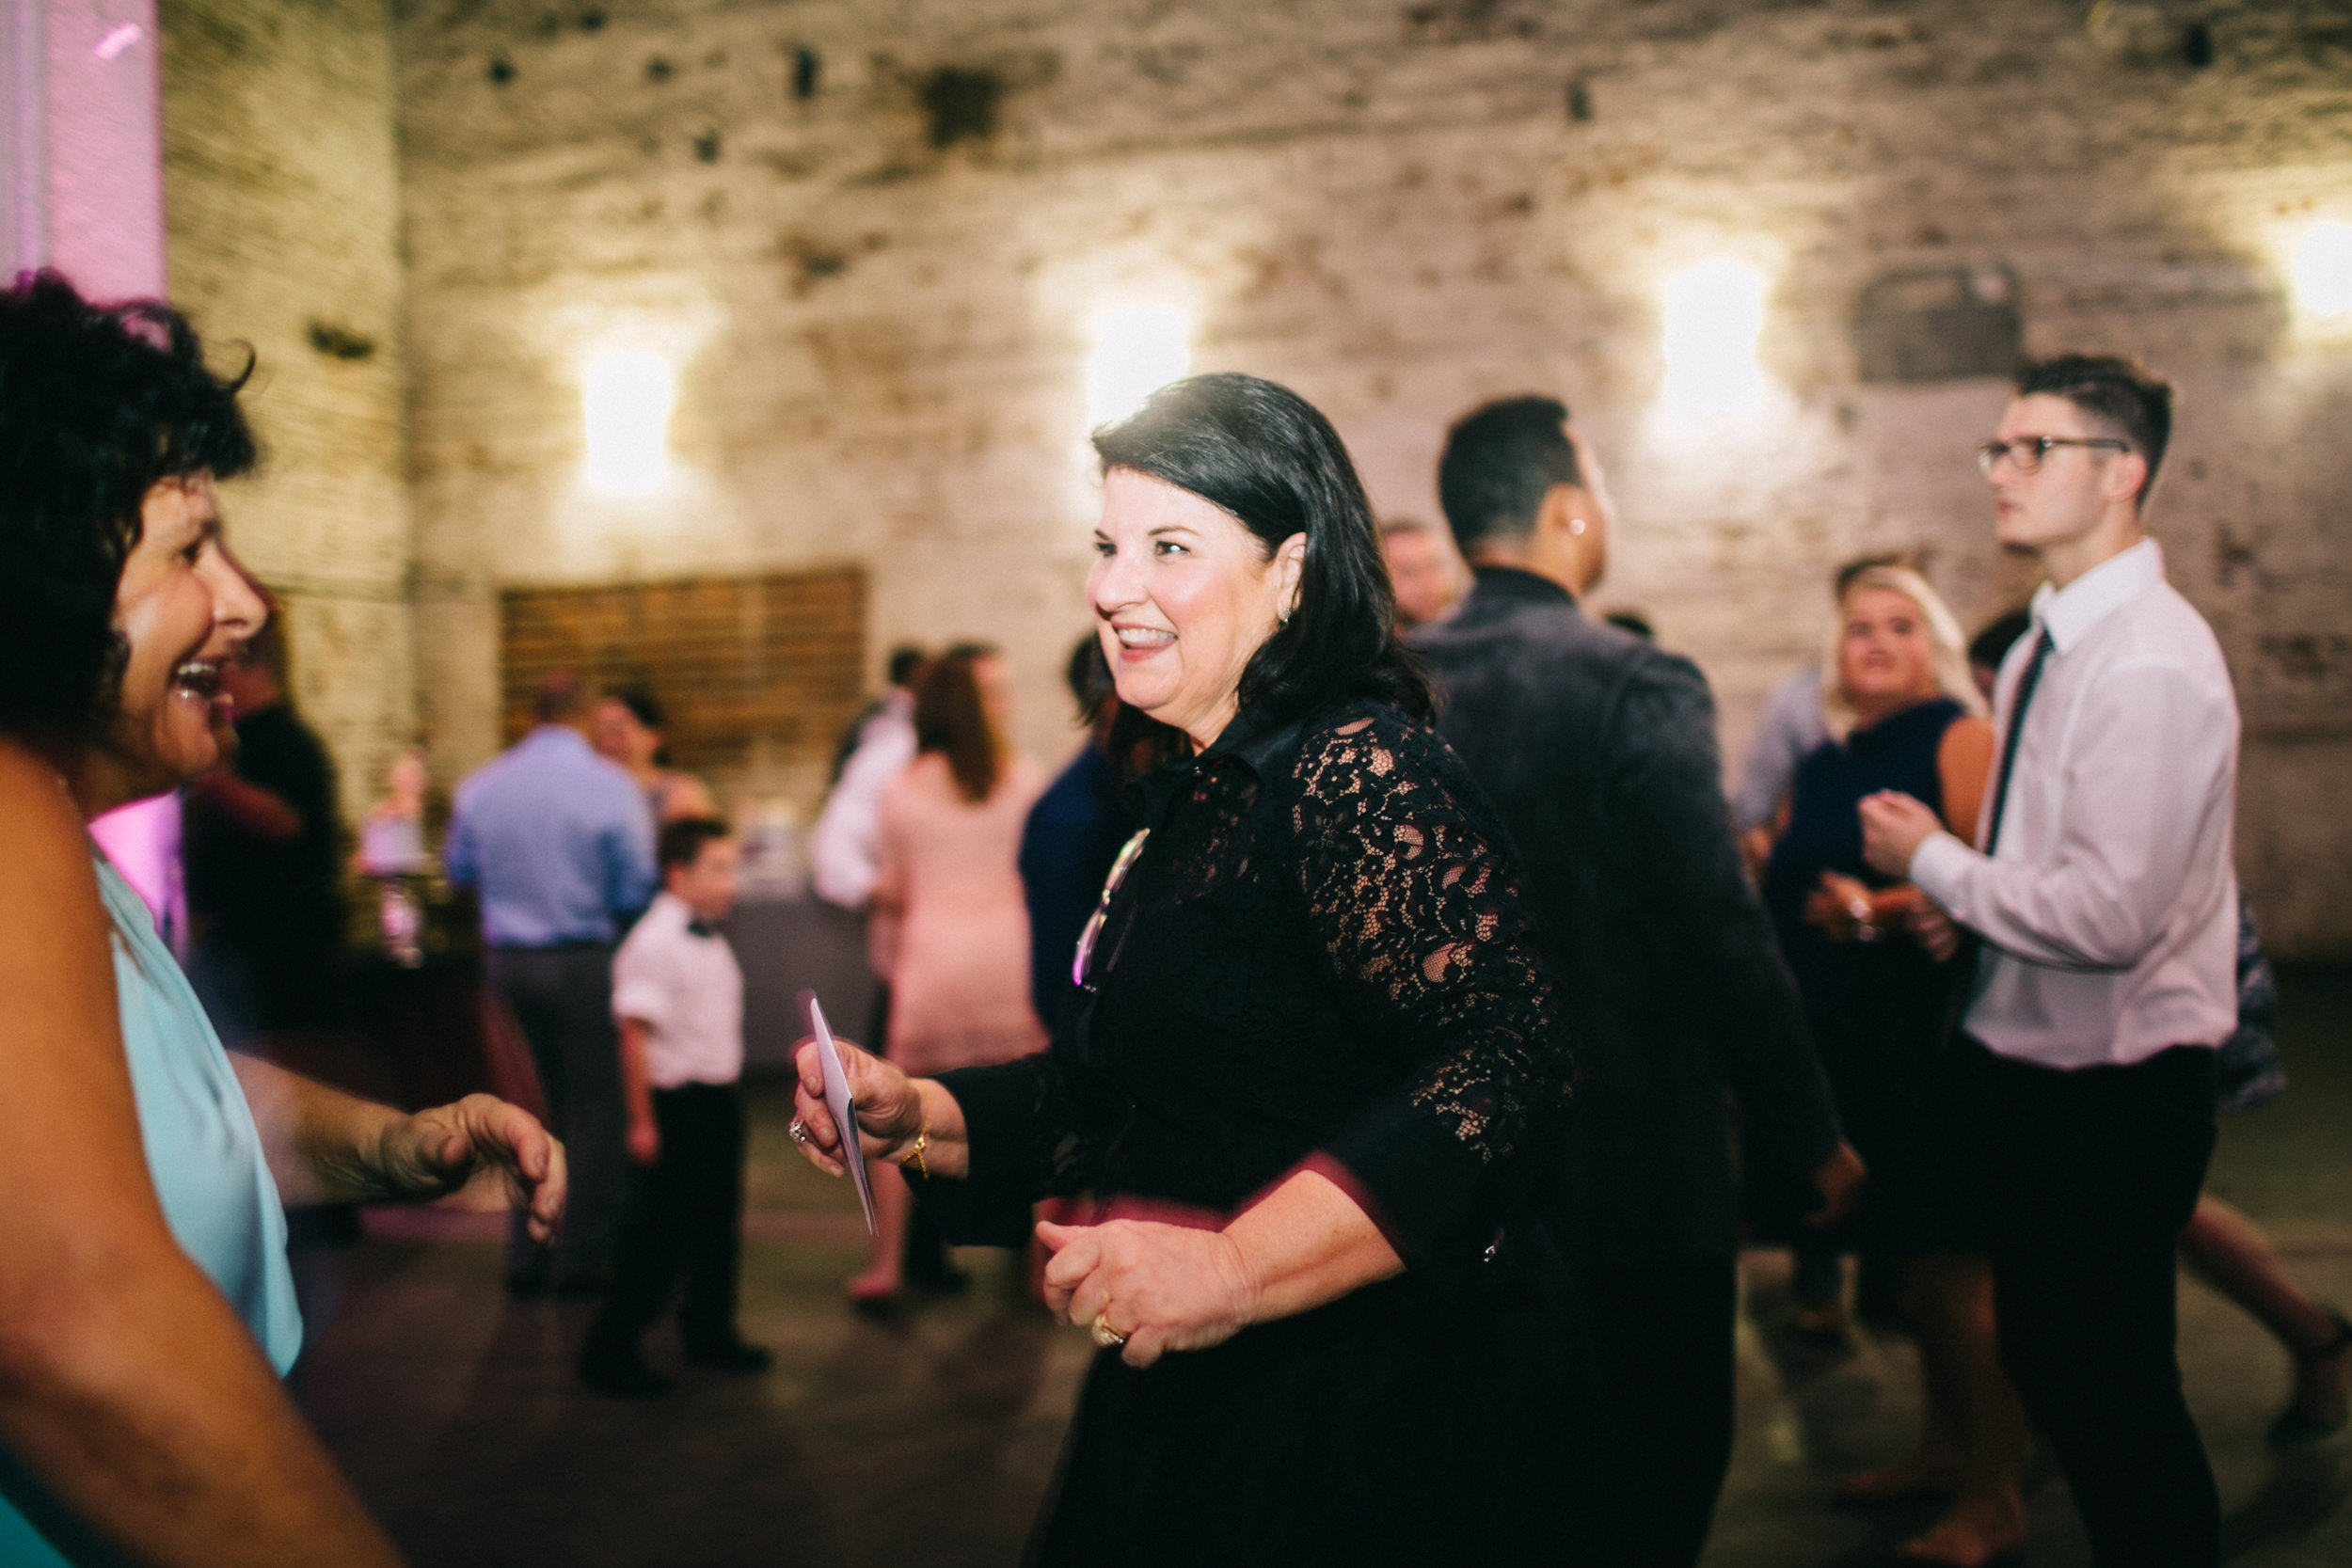 Tampa Industrial wedding at the Rialto Theater_203.jpg